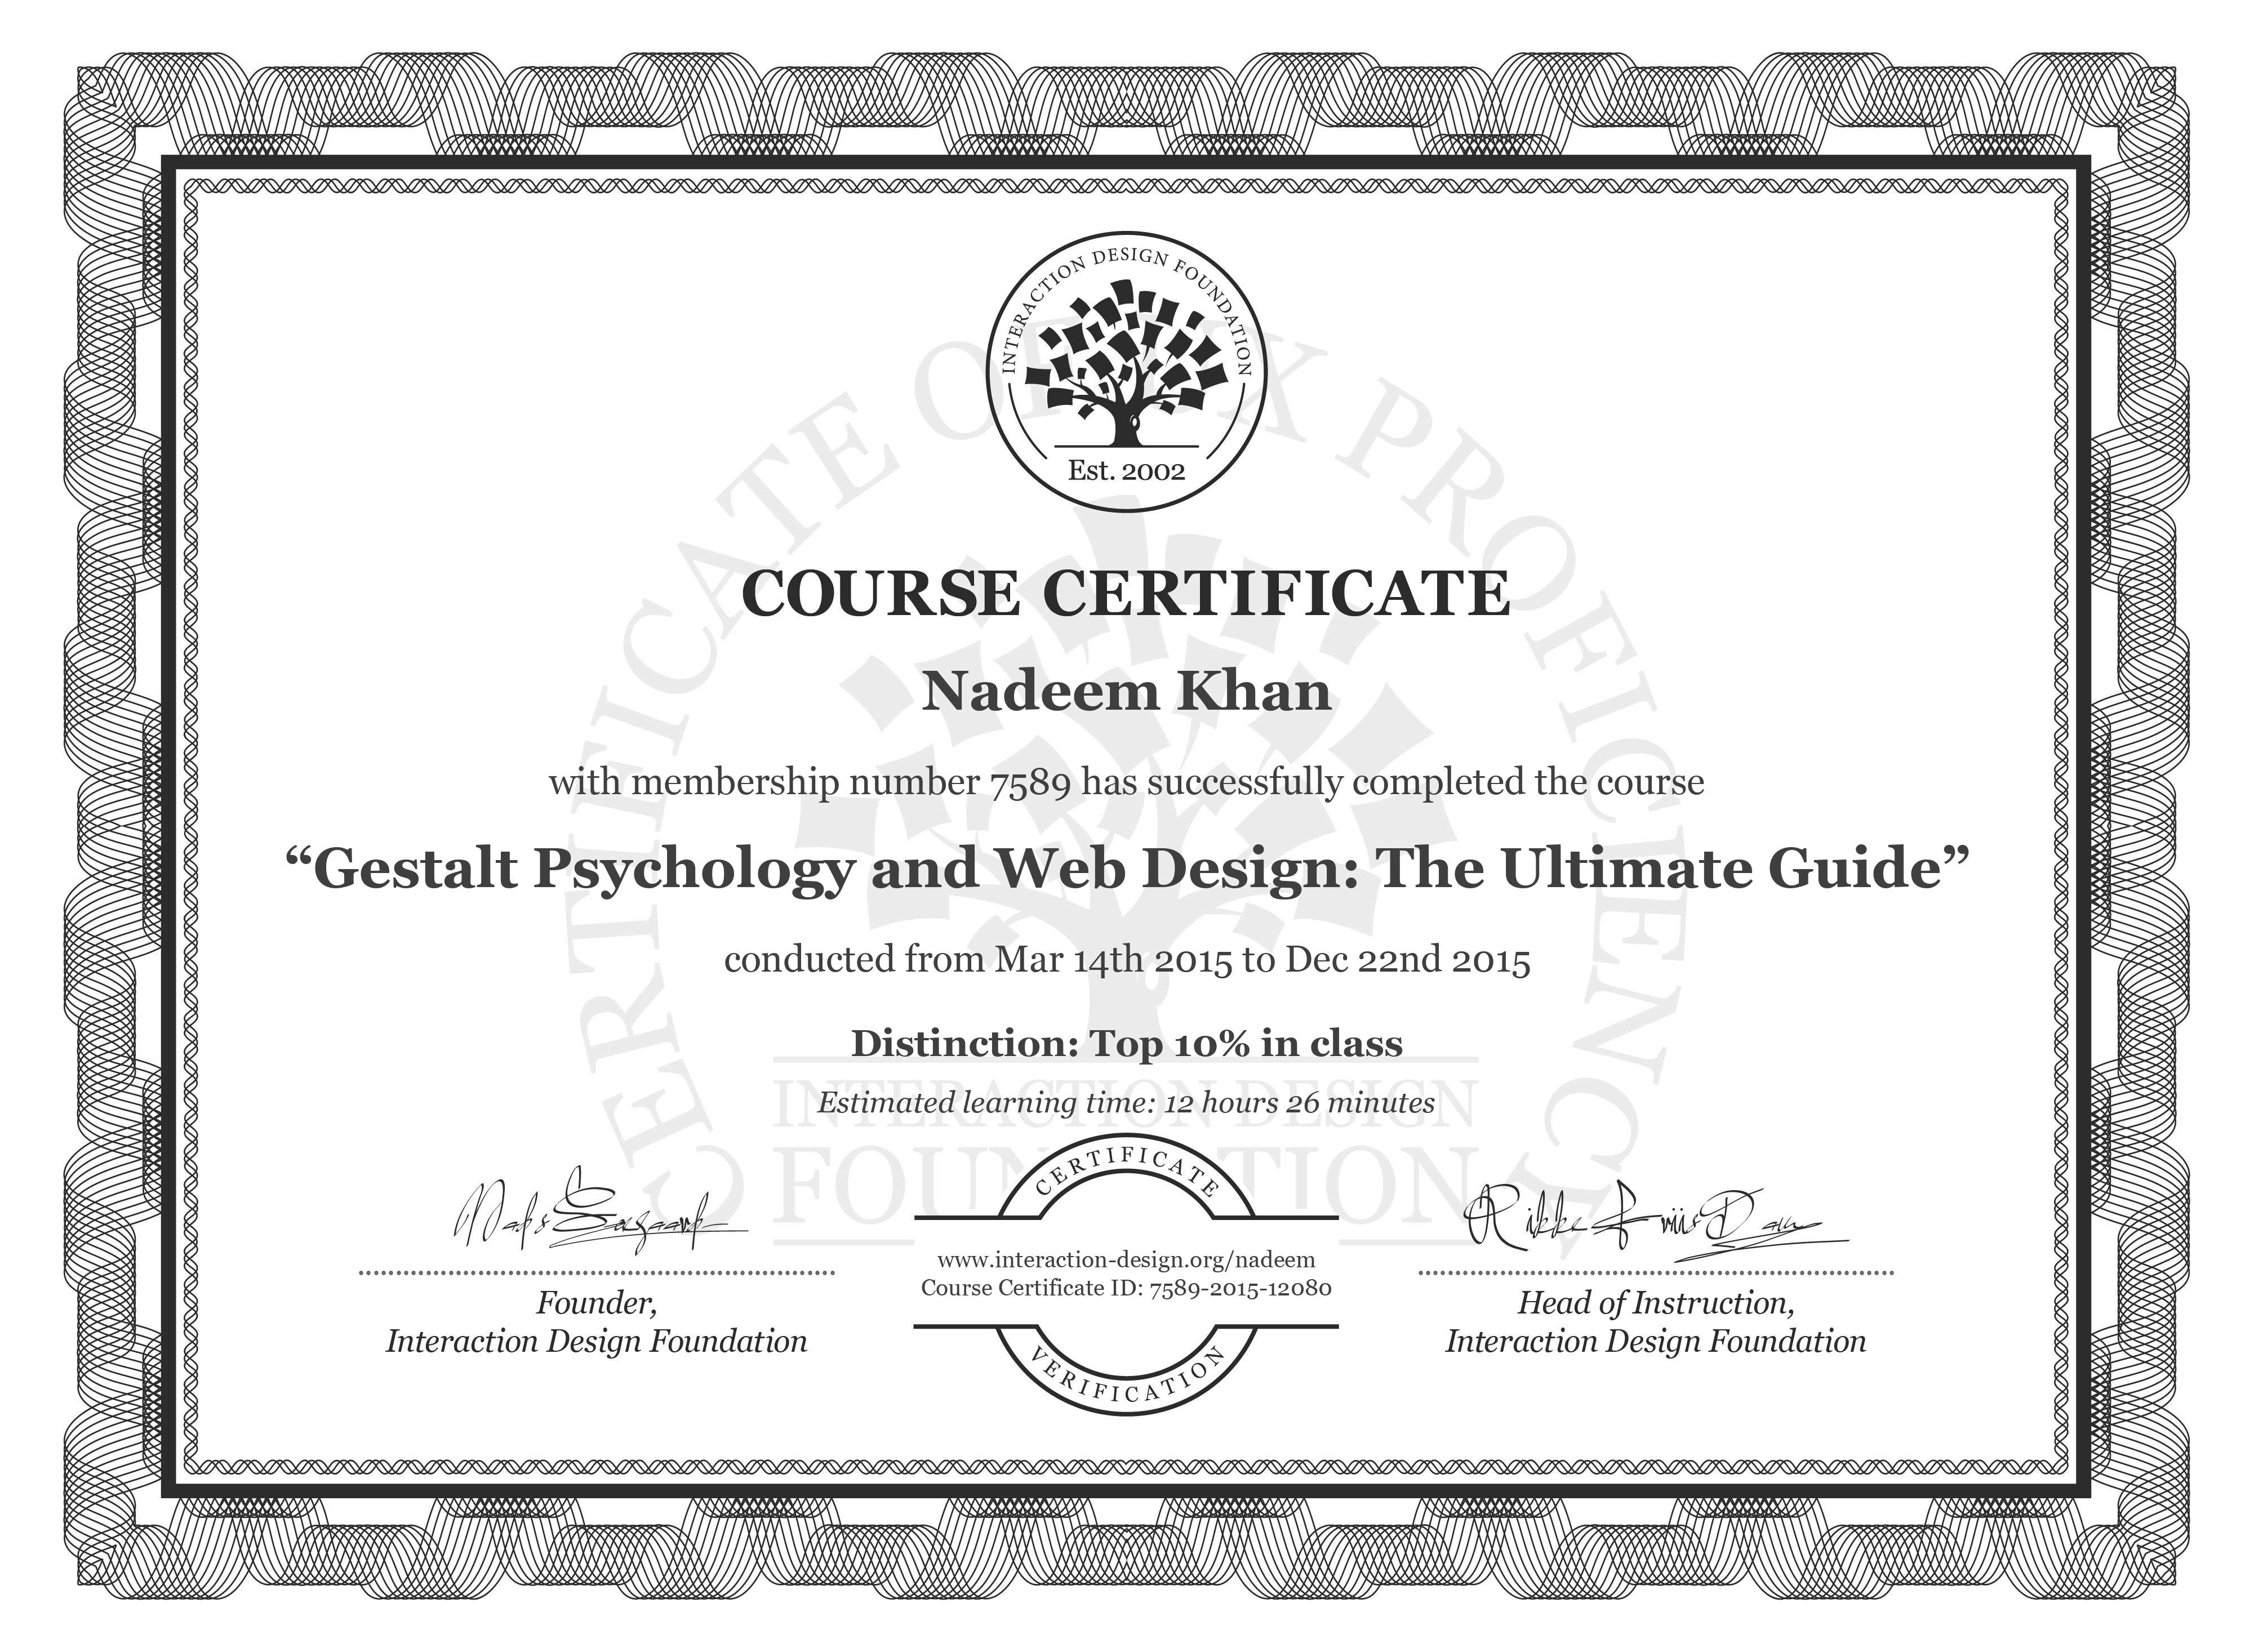 Nadeem Khan's Course Certificate: Gestalt Psychology and Web Design: The Ultimate Guide